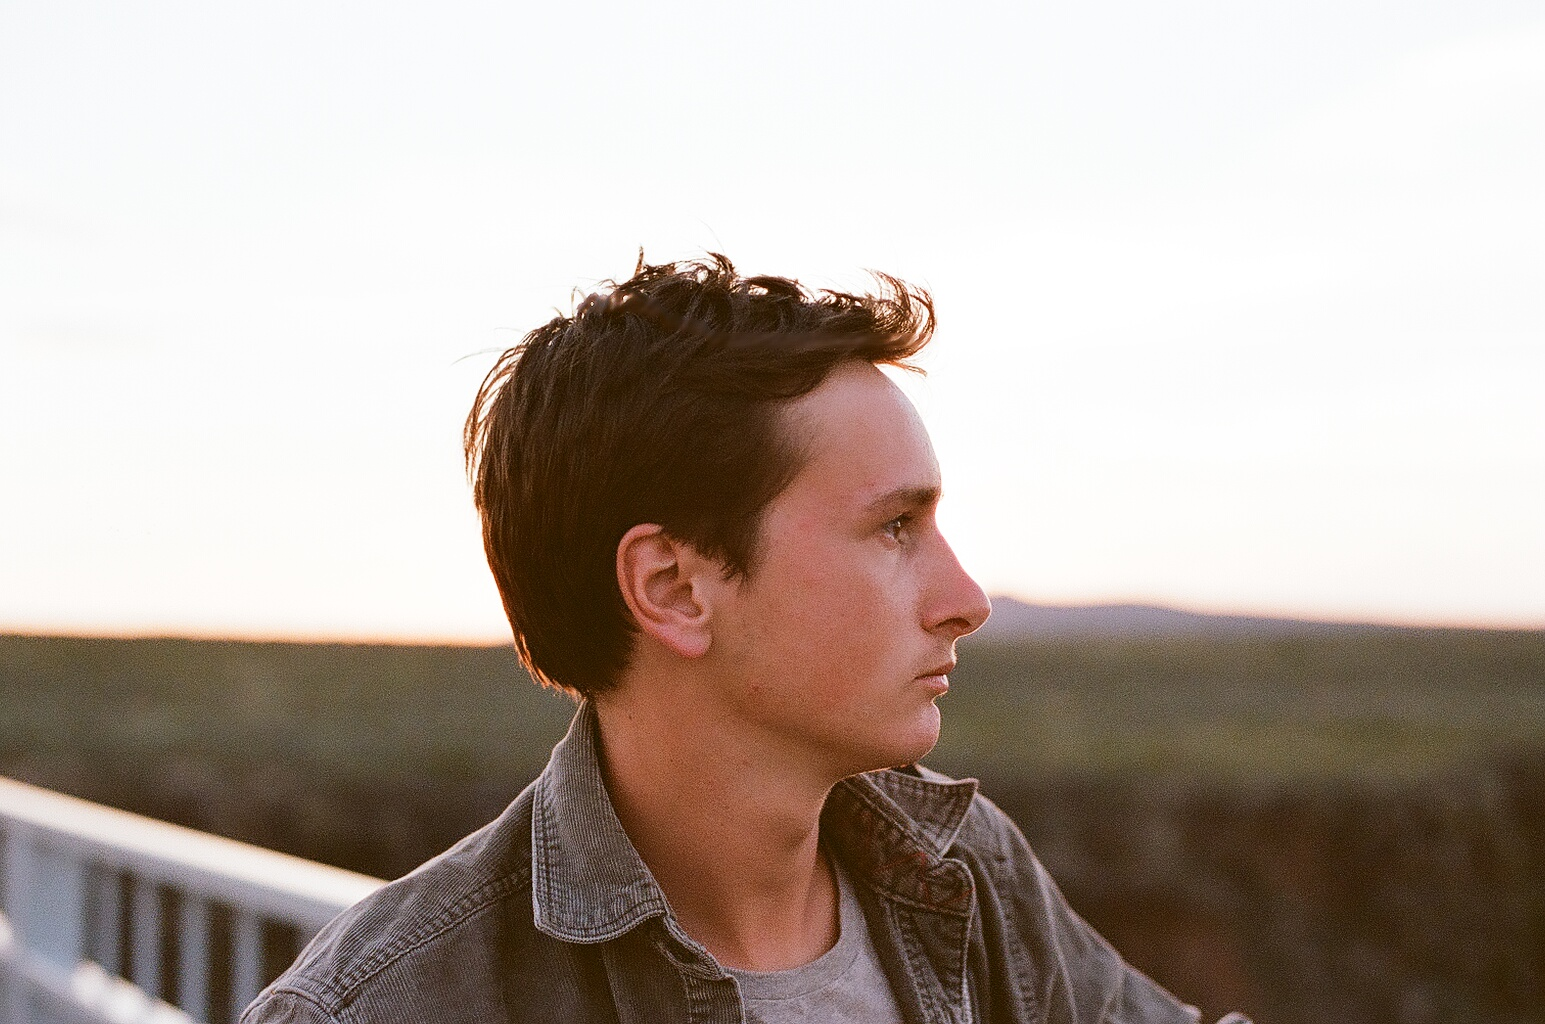 Gabe Scarlett near Taos, New Mexico (2016)